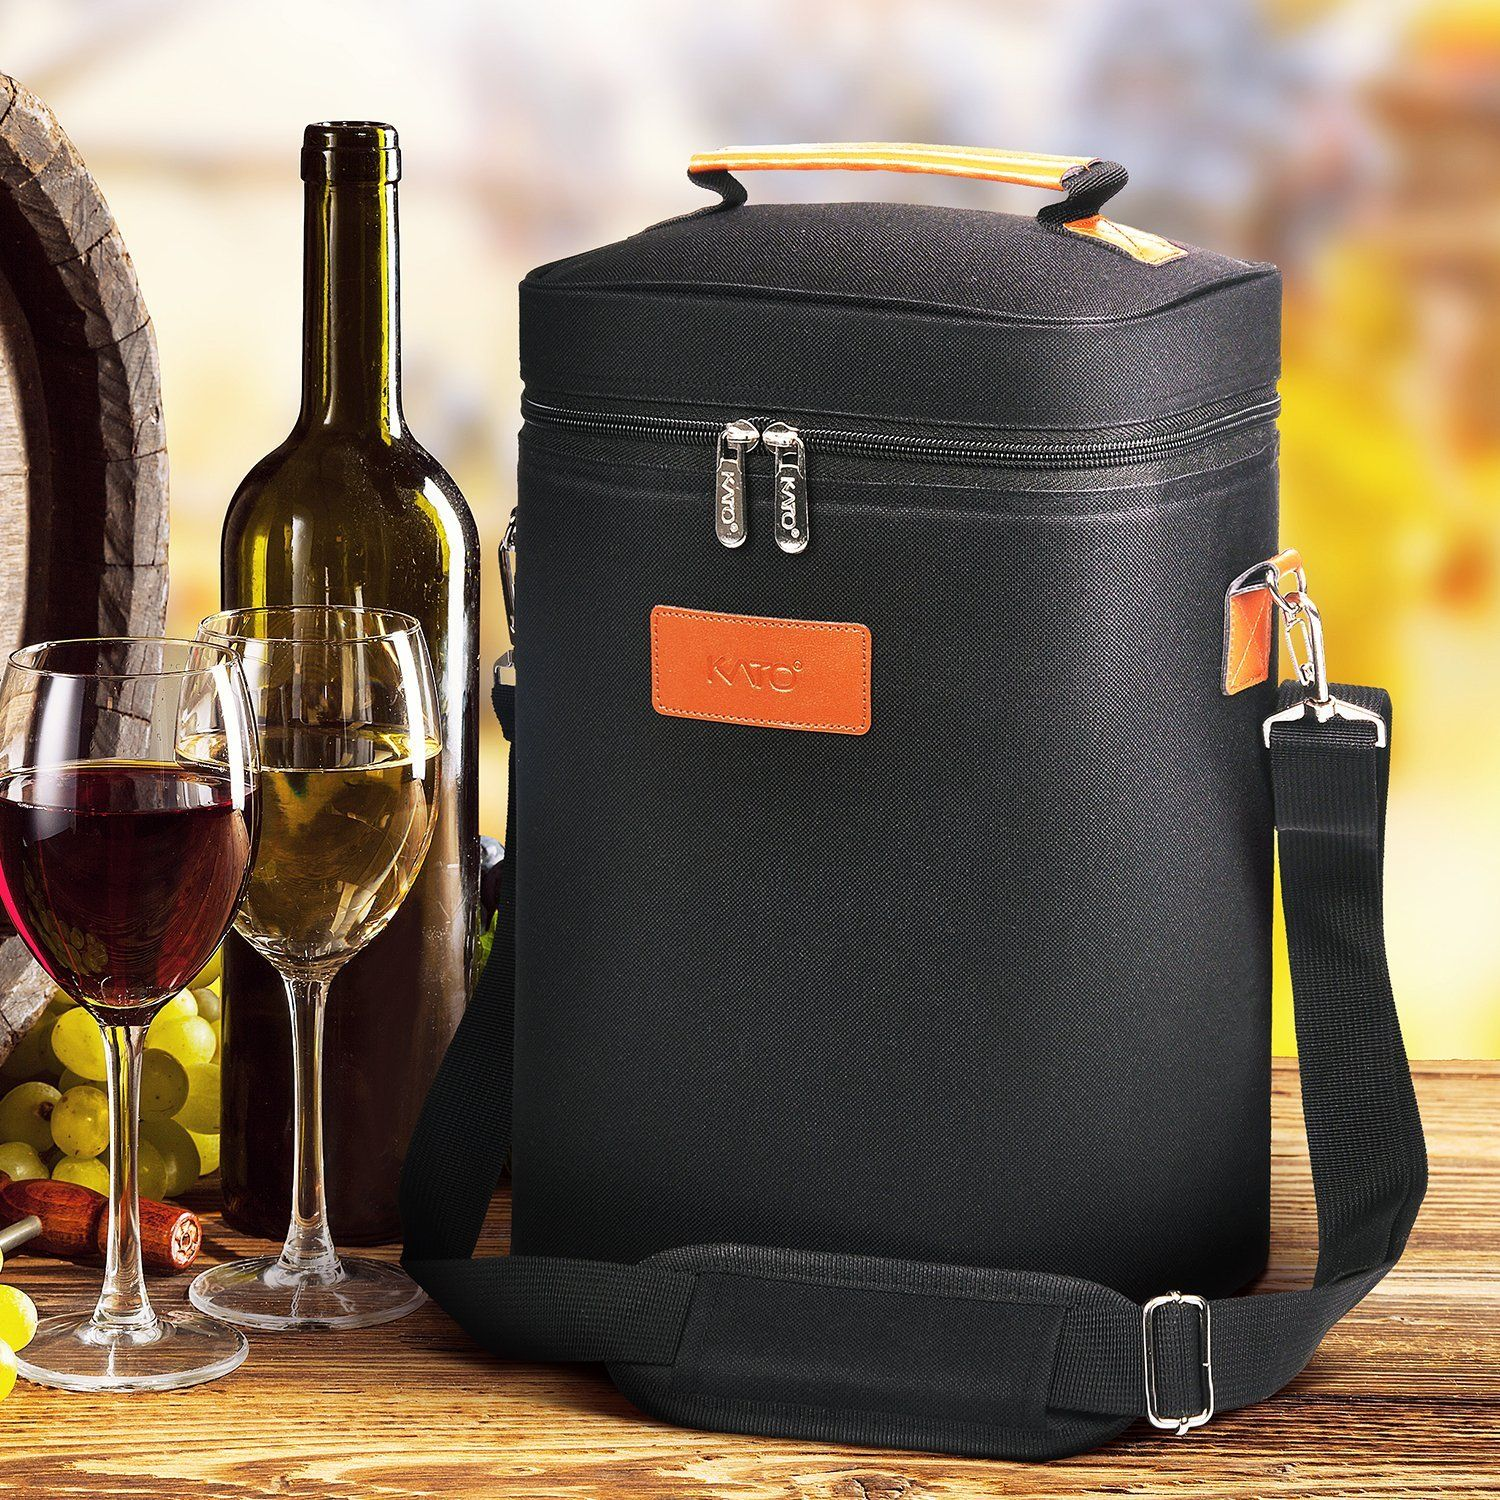 Kato Insulated Wine Carrier Bag 4 Bottle Travel Padded Wine Carrying Coolertote With Handle And Shoulder Strap Gre Wine Carrier Bag Wine Cooler Wine Carrier